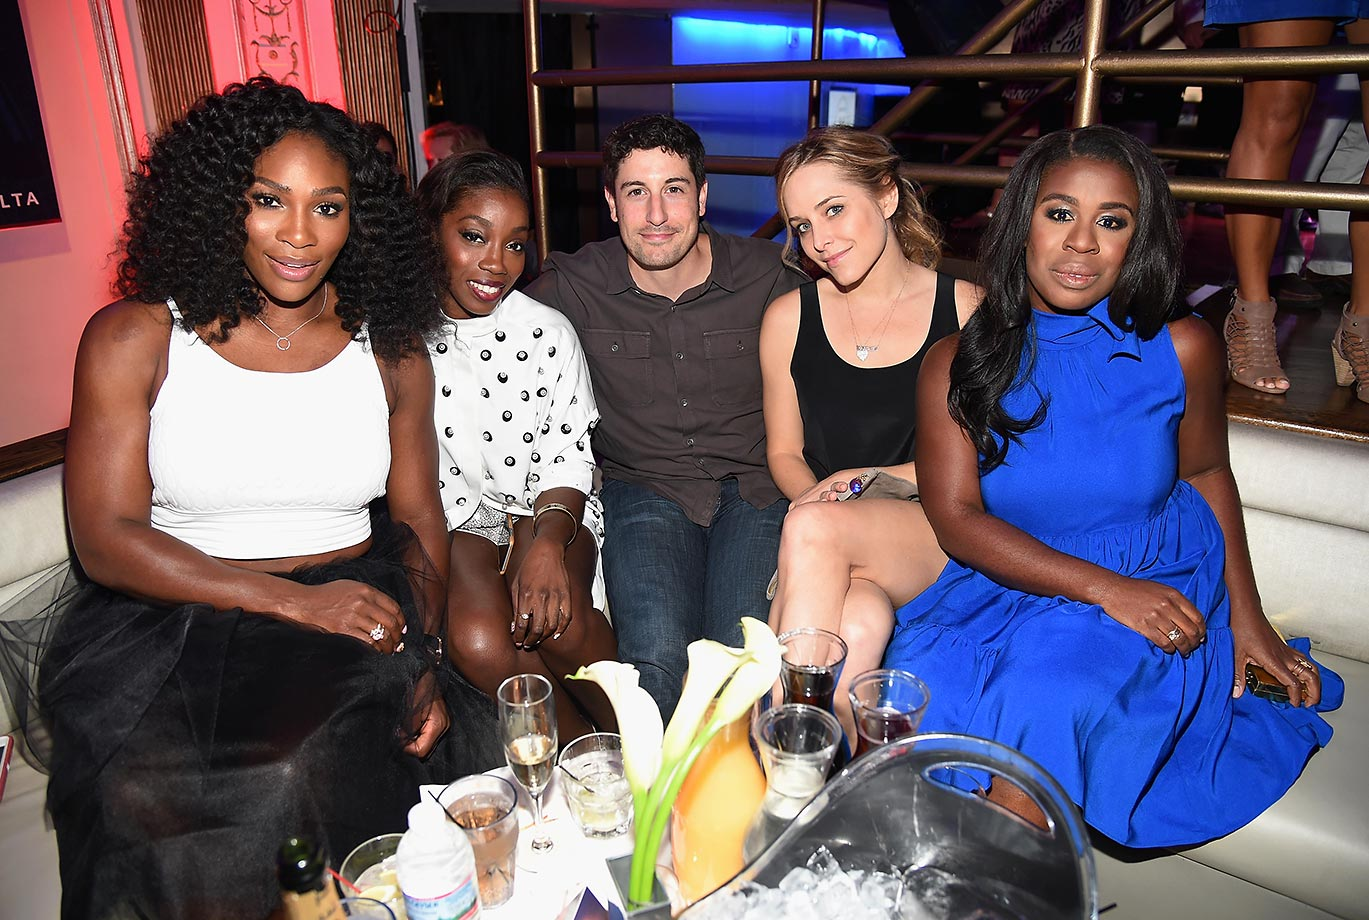 Serena, with Estelle, Jason Biggs, Jenny Mollen and Uzo Aduba at the 2nd Annual Delta Open Mic, a few days before the 2015 U.S. Open began.